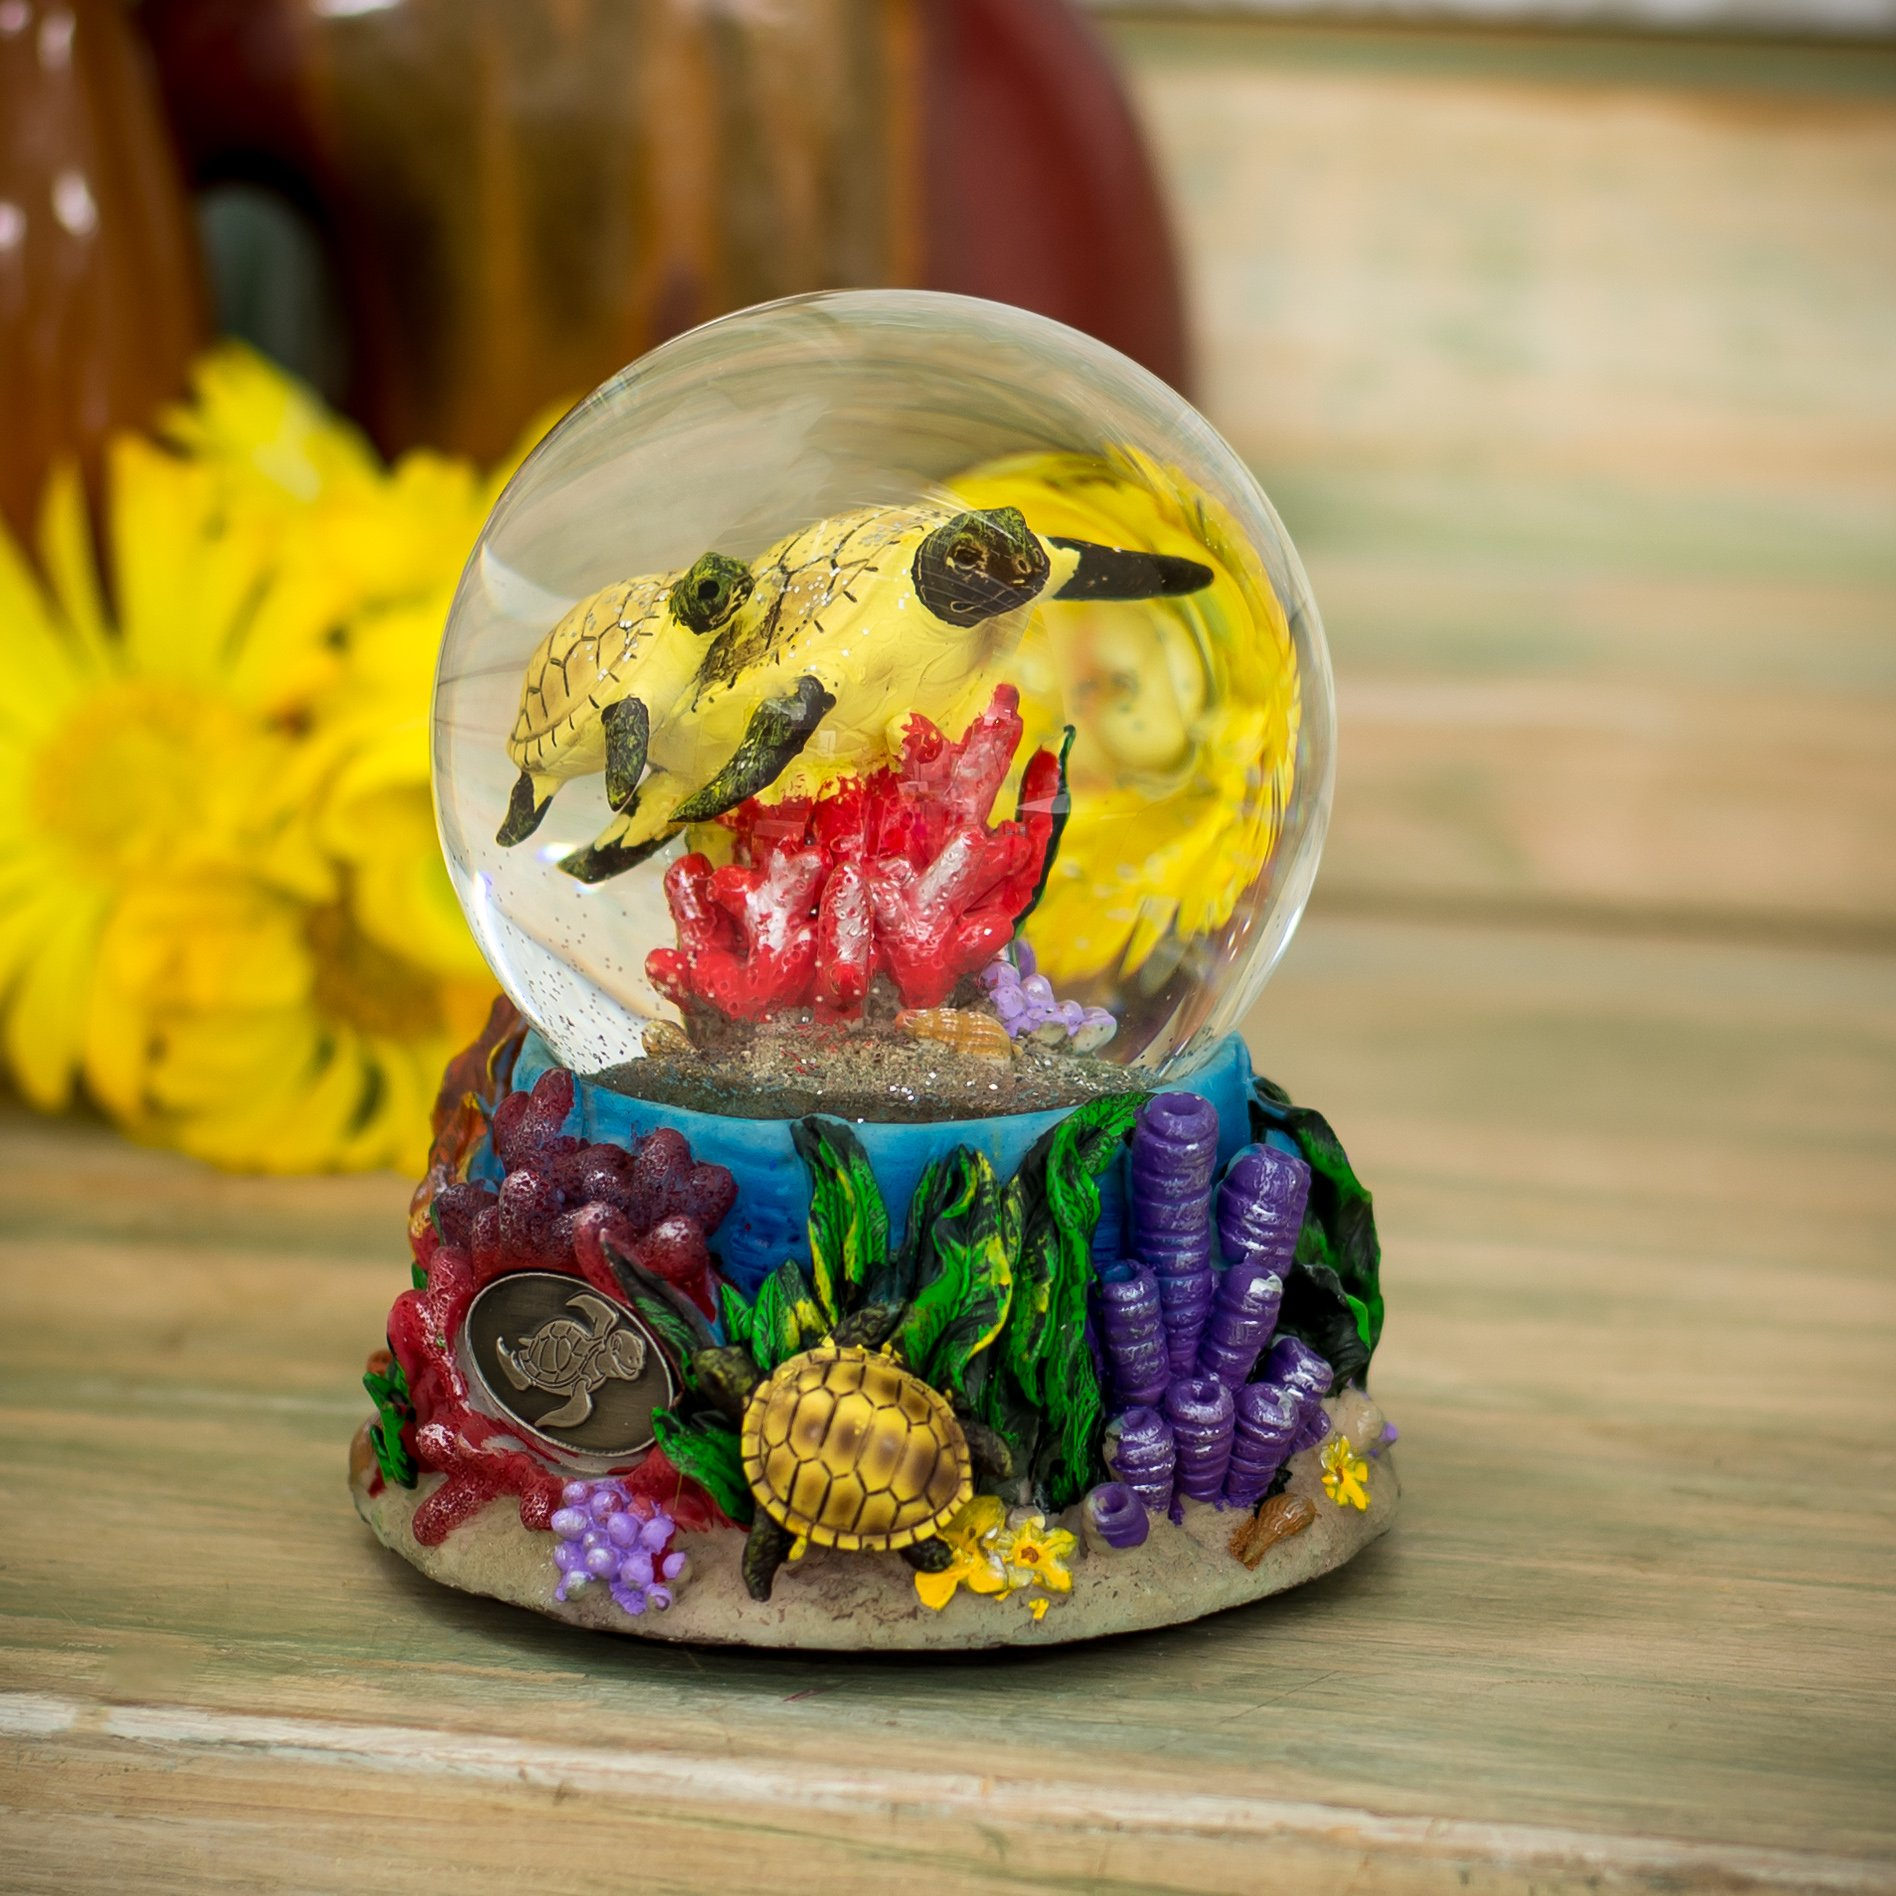 Turtles Underwater 100mm Resin Glitter Water Globe Plays Tune Somewhere Out There by Cadona International, Inc (Image #2)